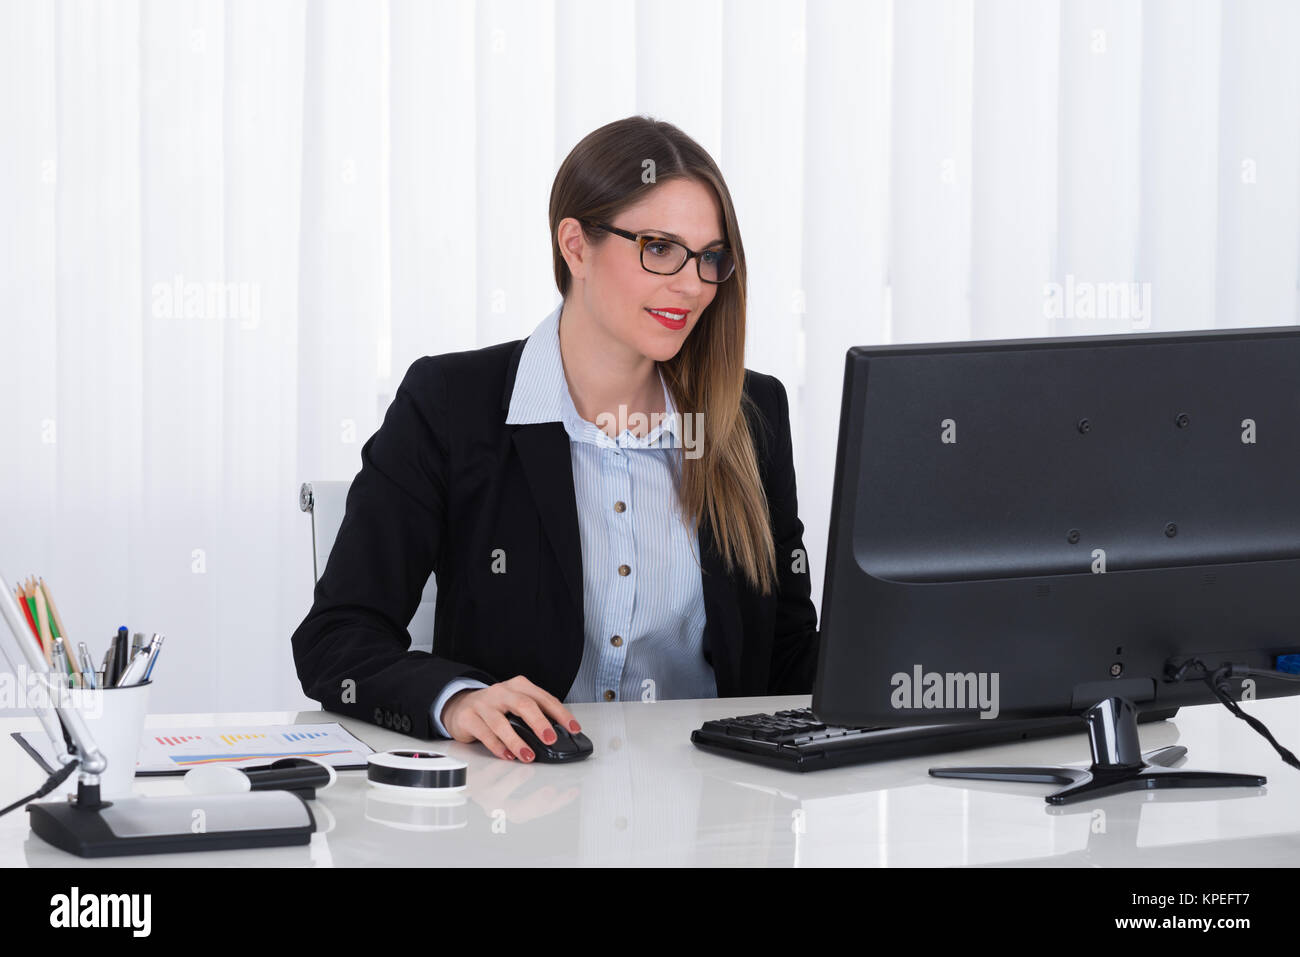 Businesswoman Using Computer - Stock Image